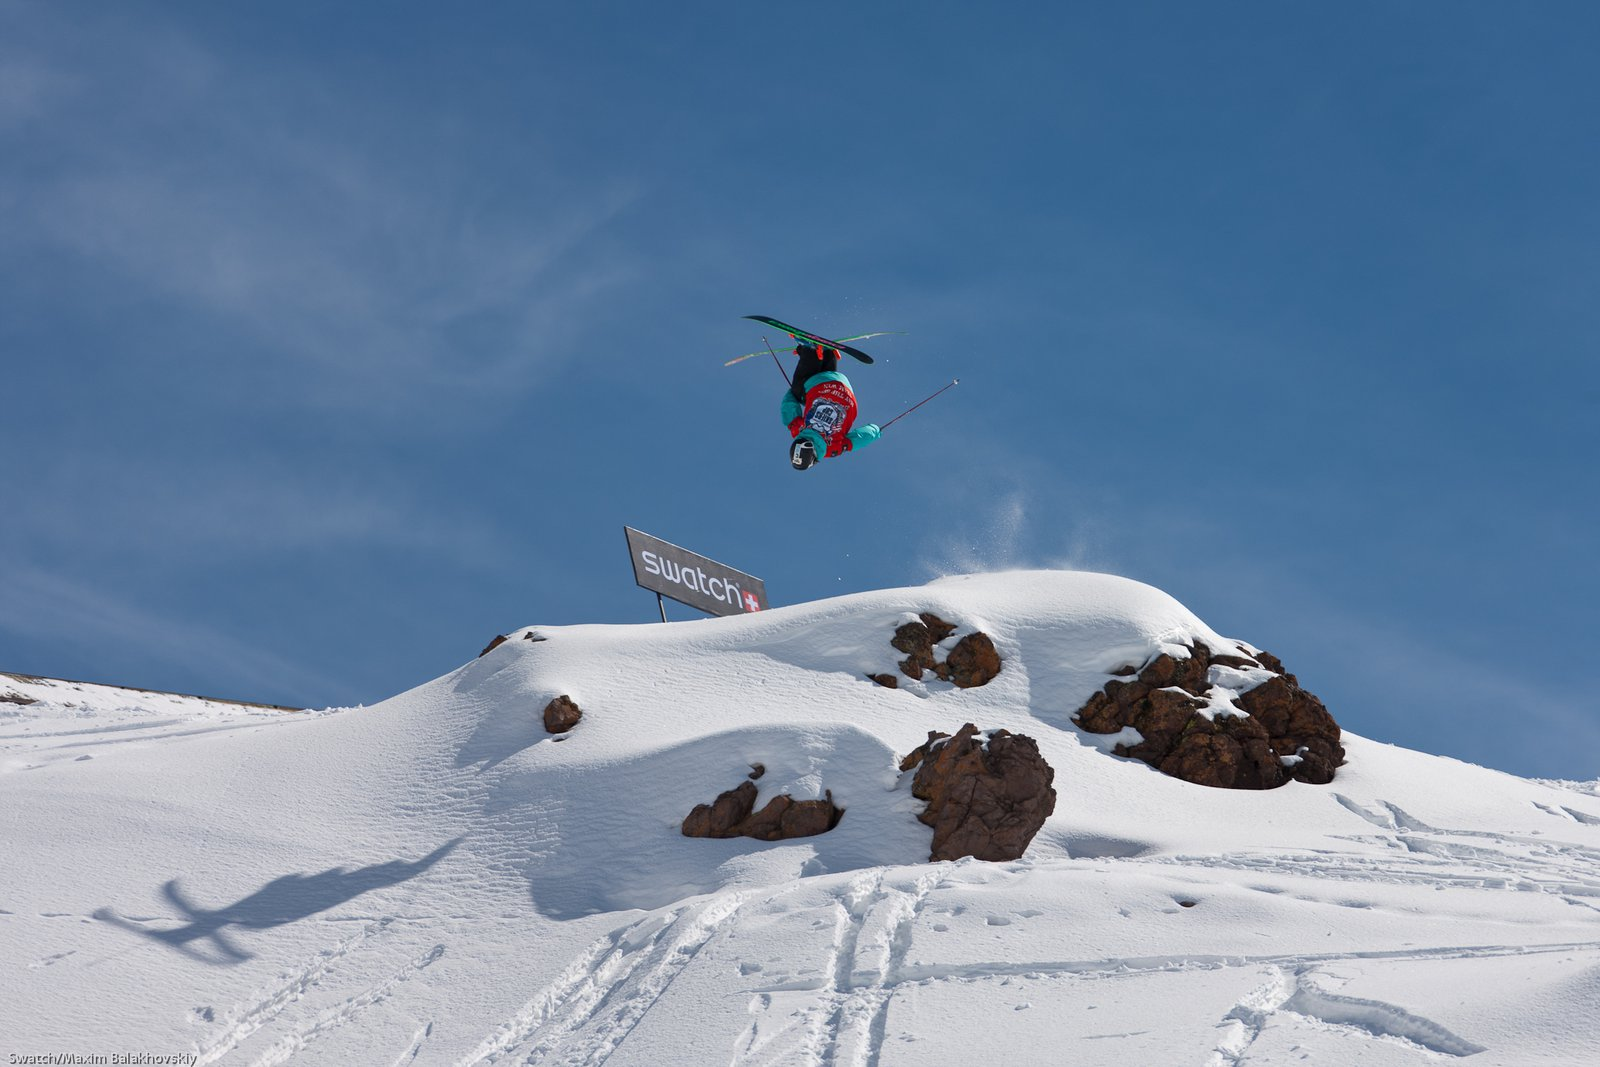 Rory Bushfield at the Swatch Skiers Cup